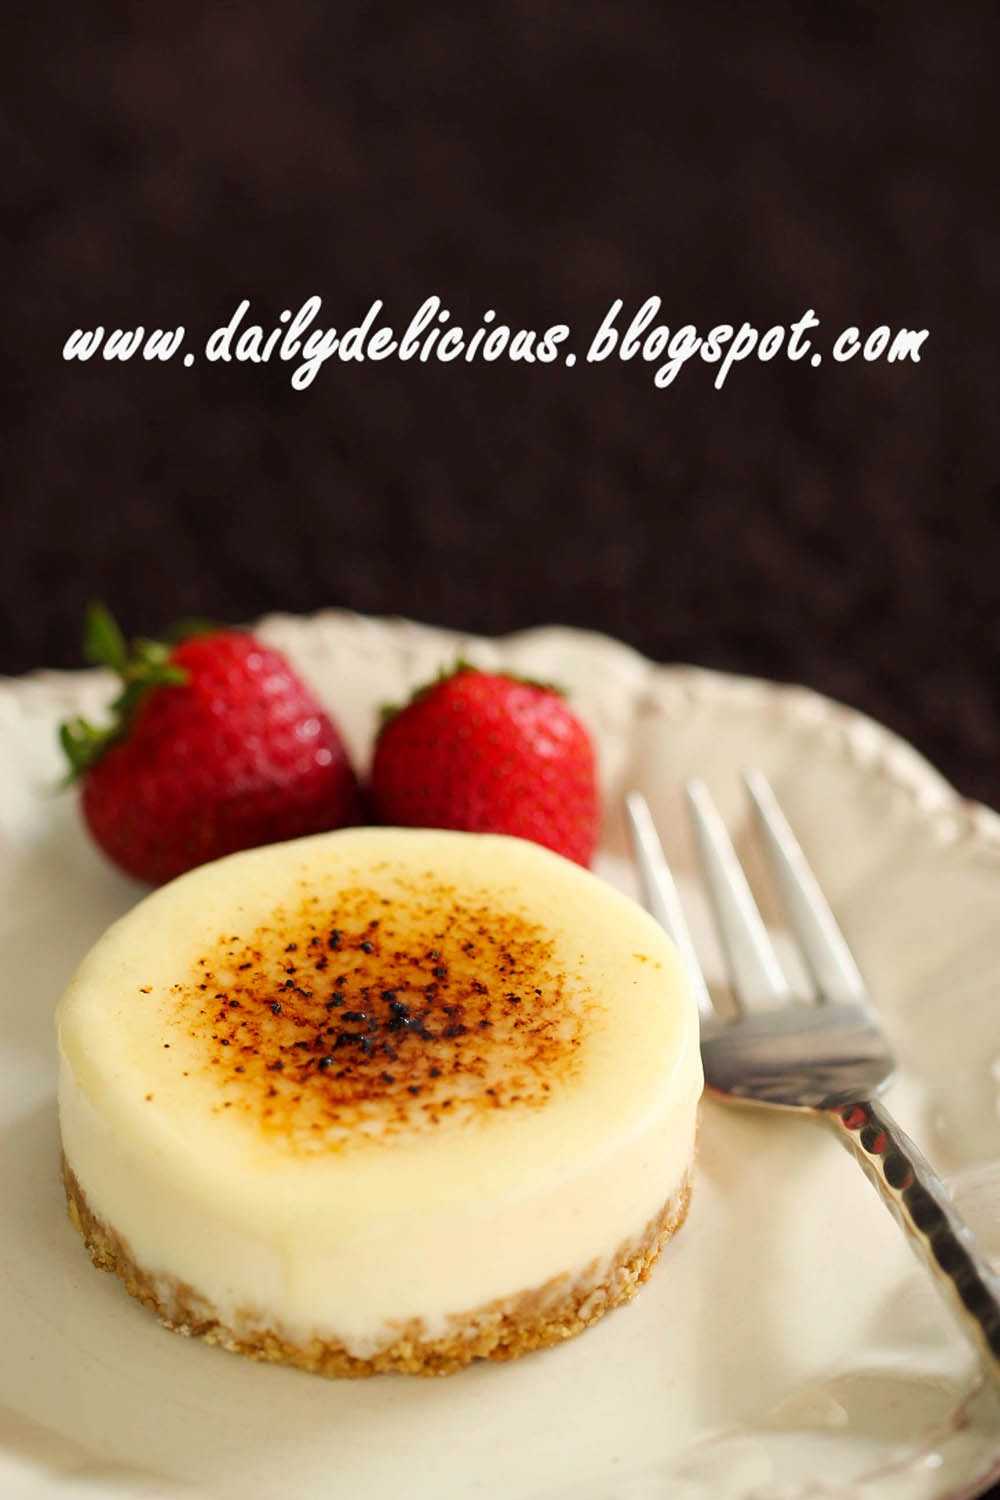 dailydelicious: Crème brûlée Cheesecake: Lovely and easy no bake ...